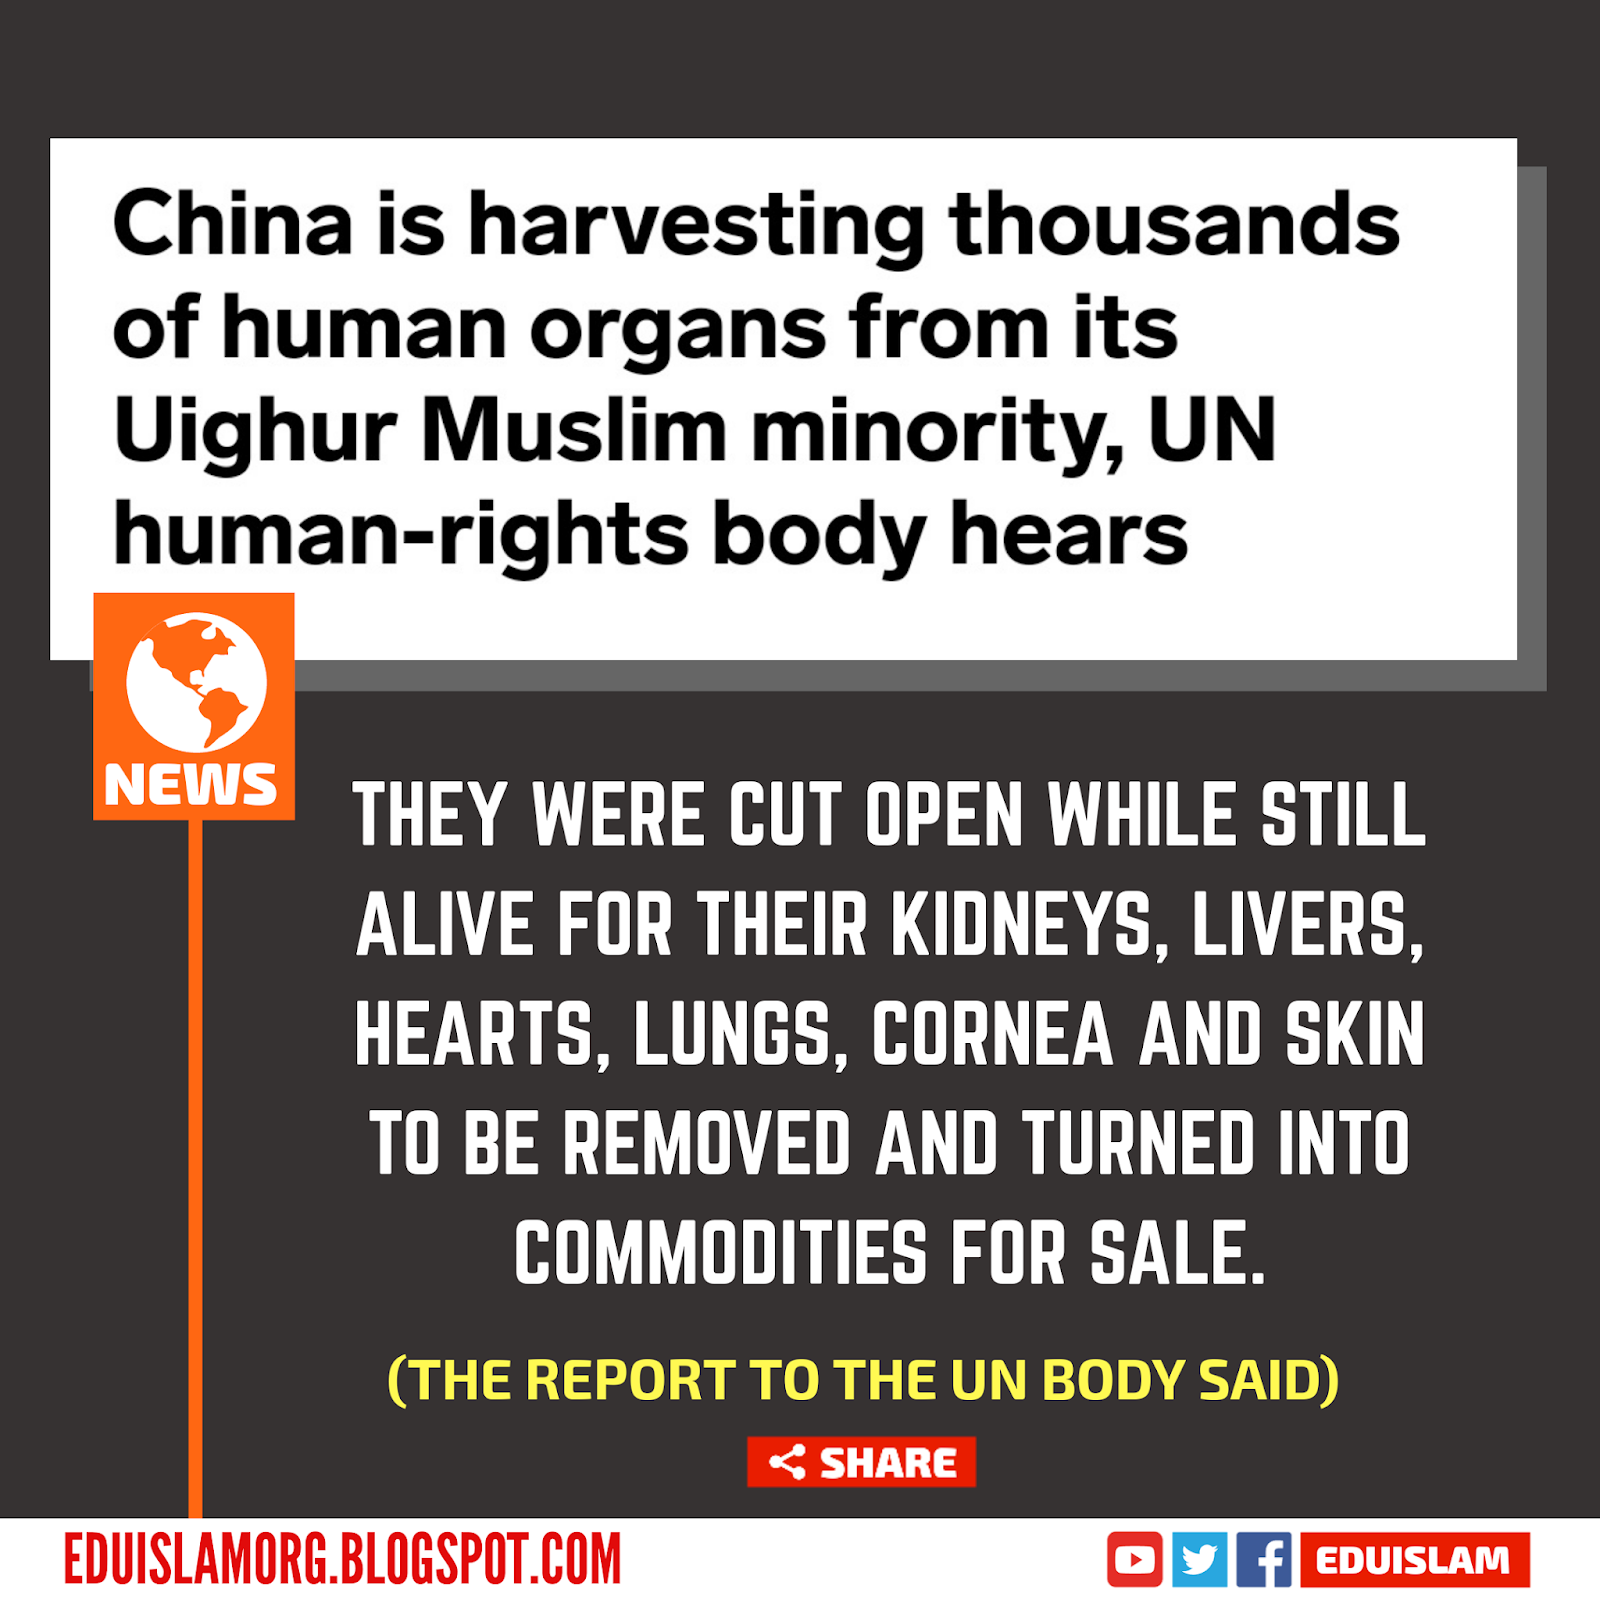 China silently carrying out the Genocide of Ughyur Muslims.